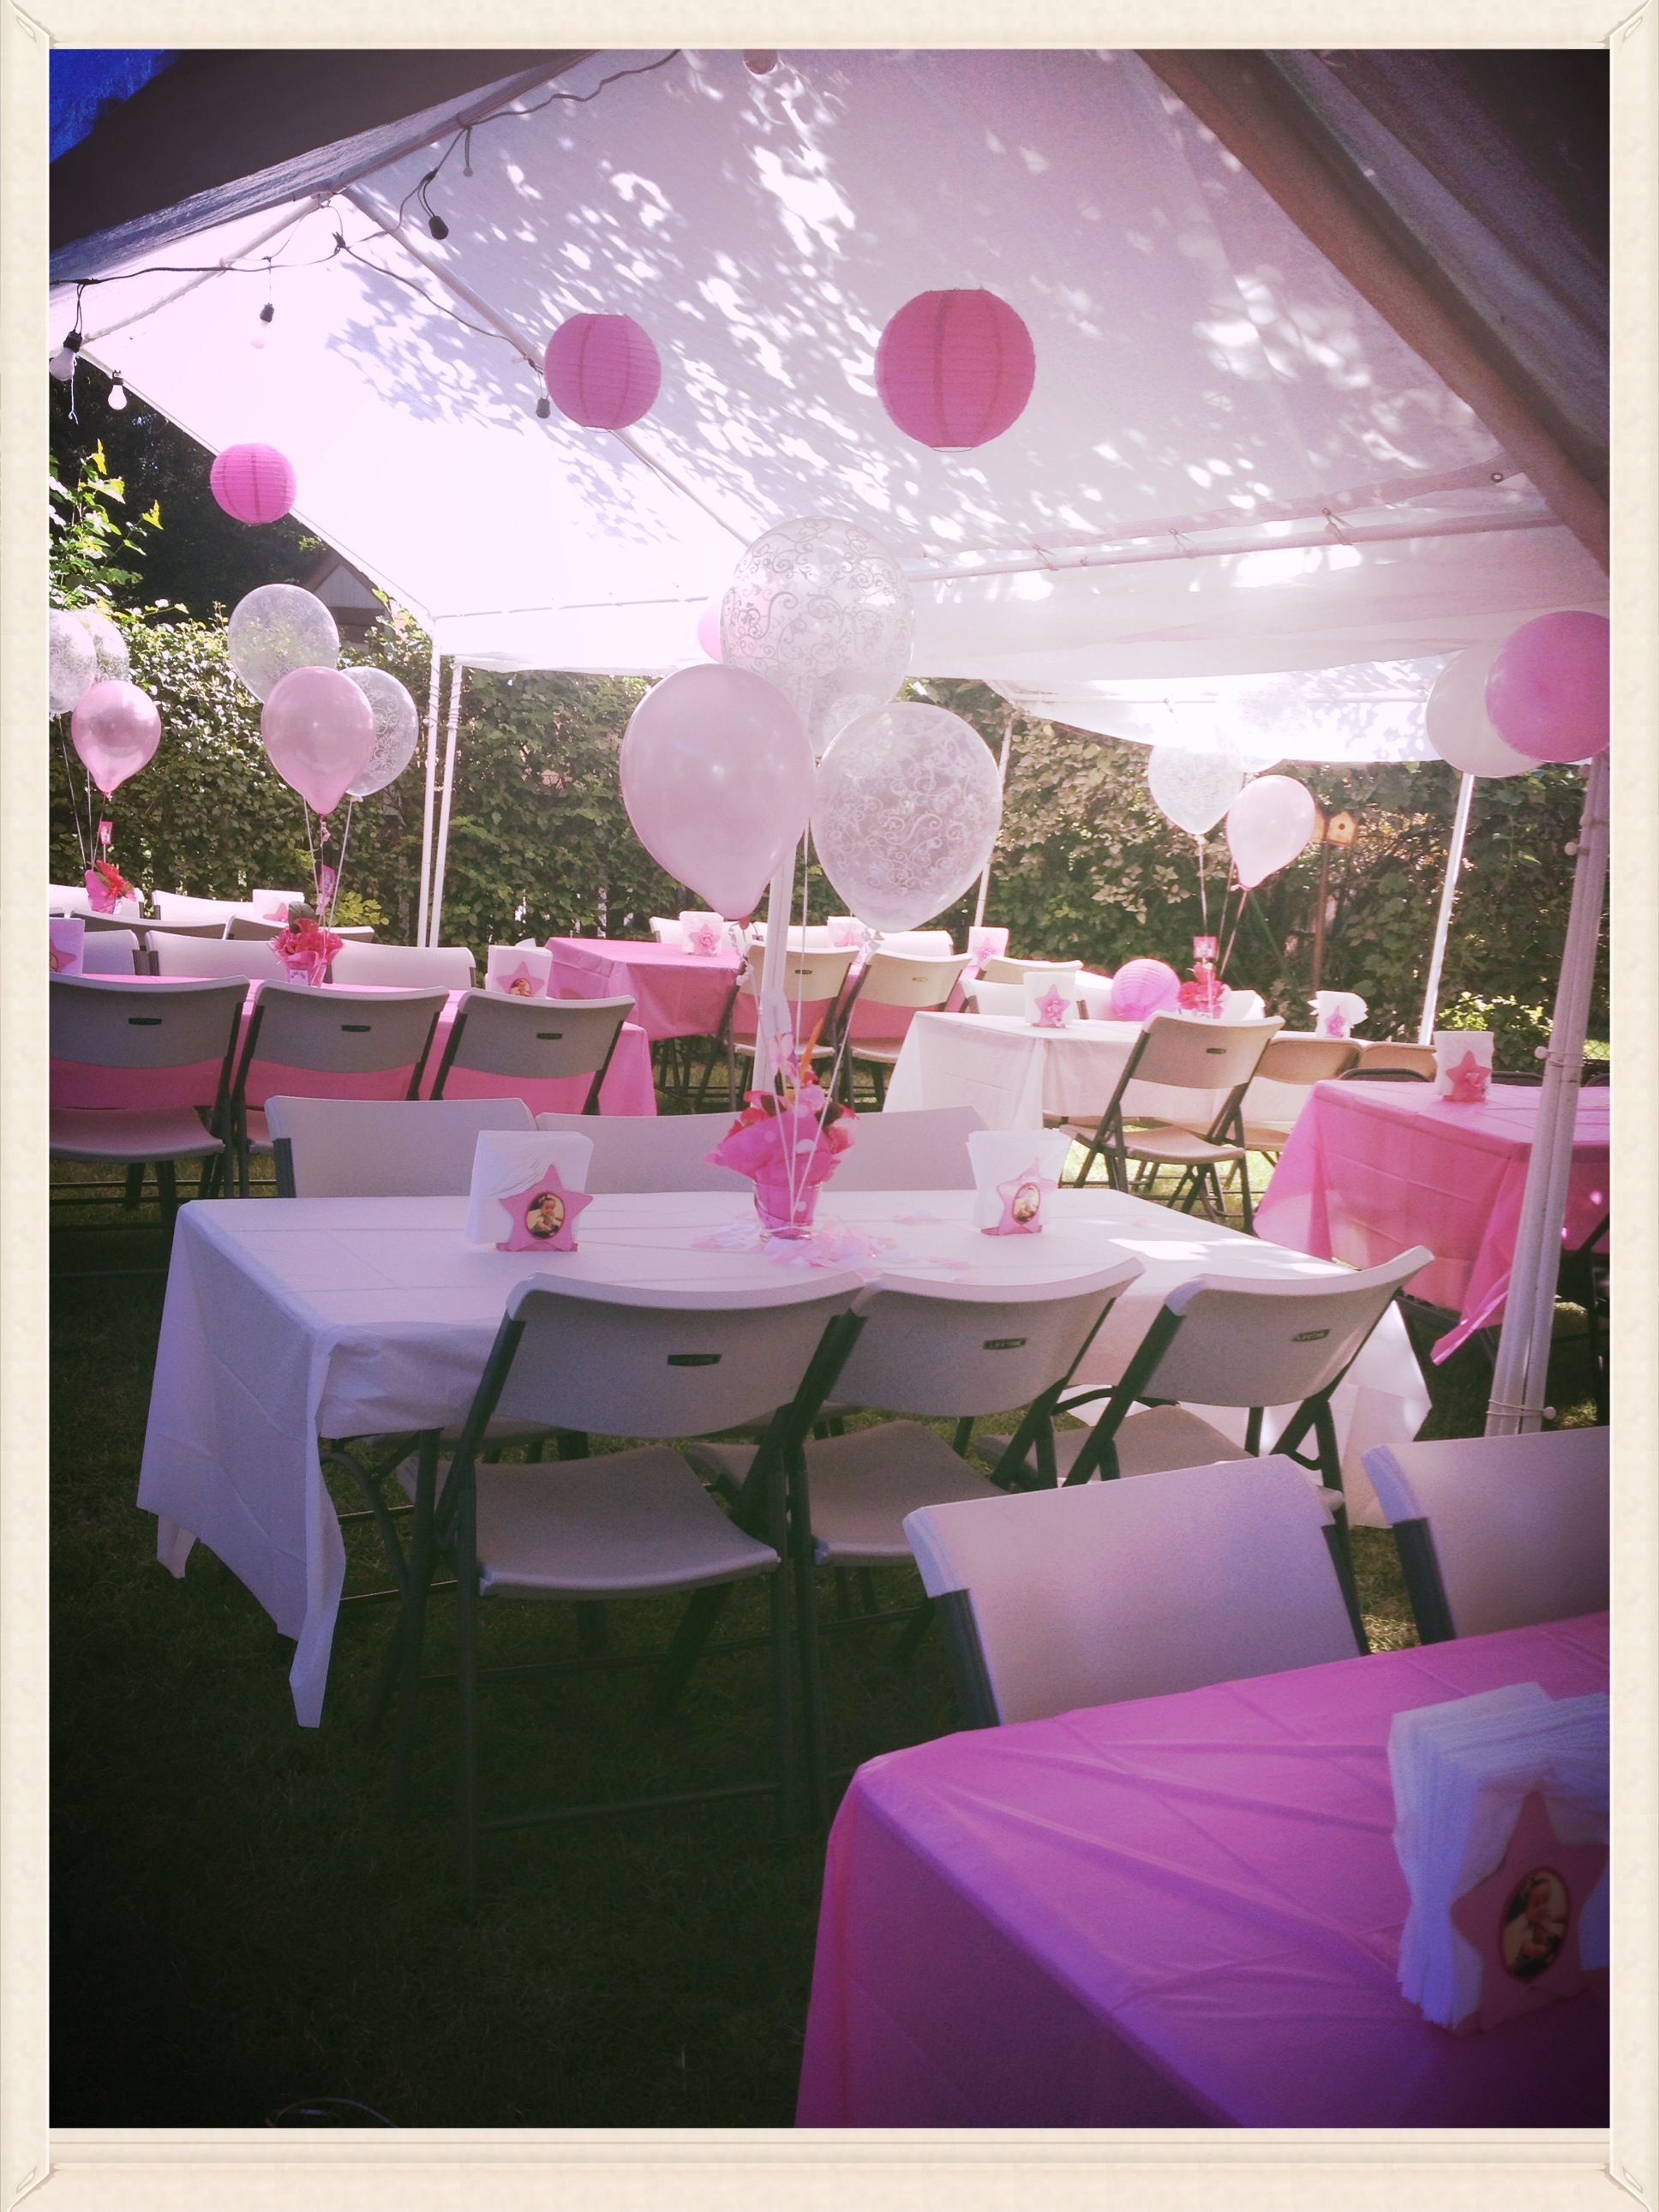 Mia izabella 39 s baptism party decorations pinterest for Outdoor party tent decorating ideas